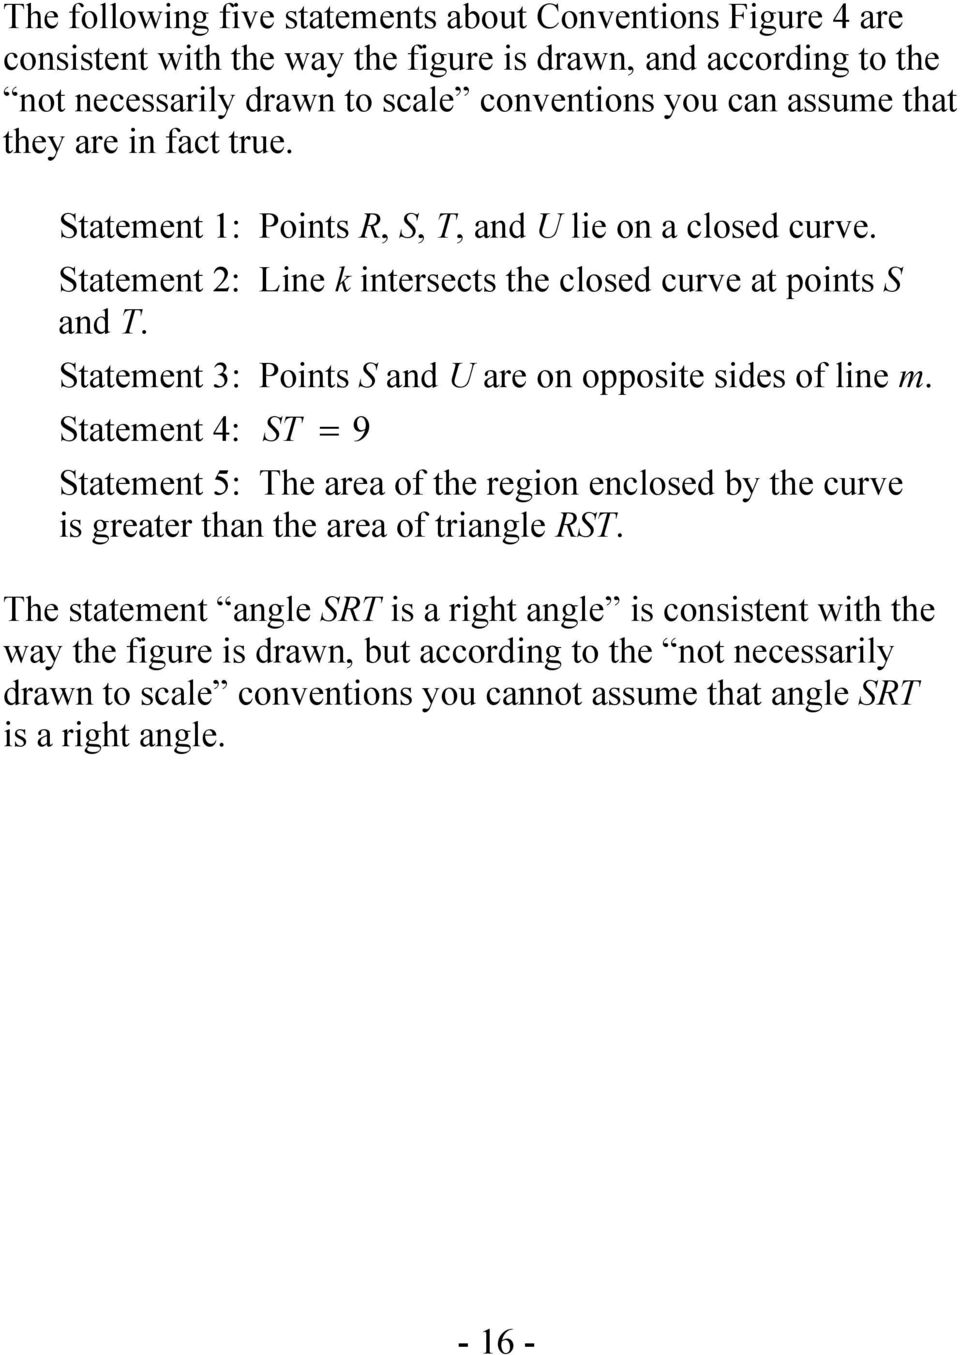 Statement 3: Points S and U are on opposite sides of line m. Statement 4: ST = 9 Statement 5: The area of the region enclosed by the curve is greater than the area of triangle RST.